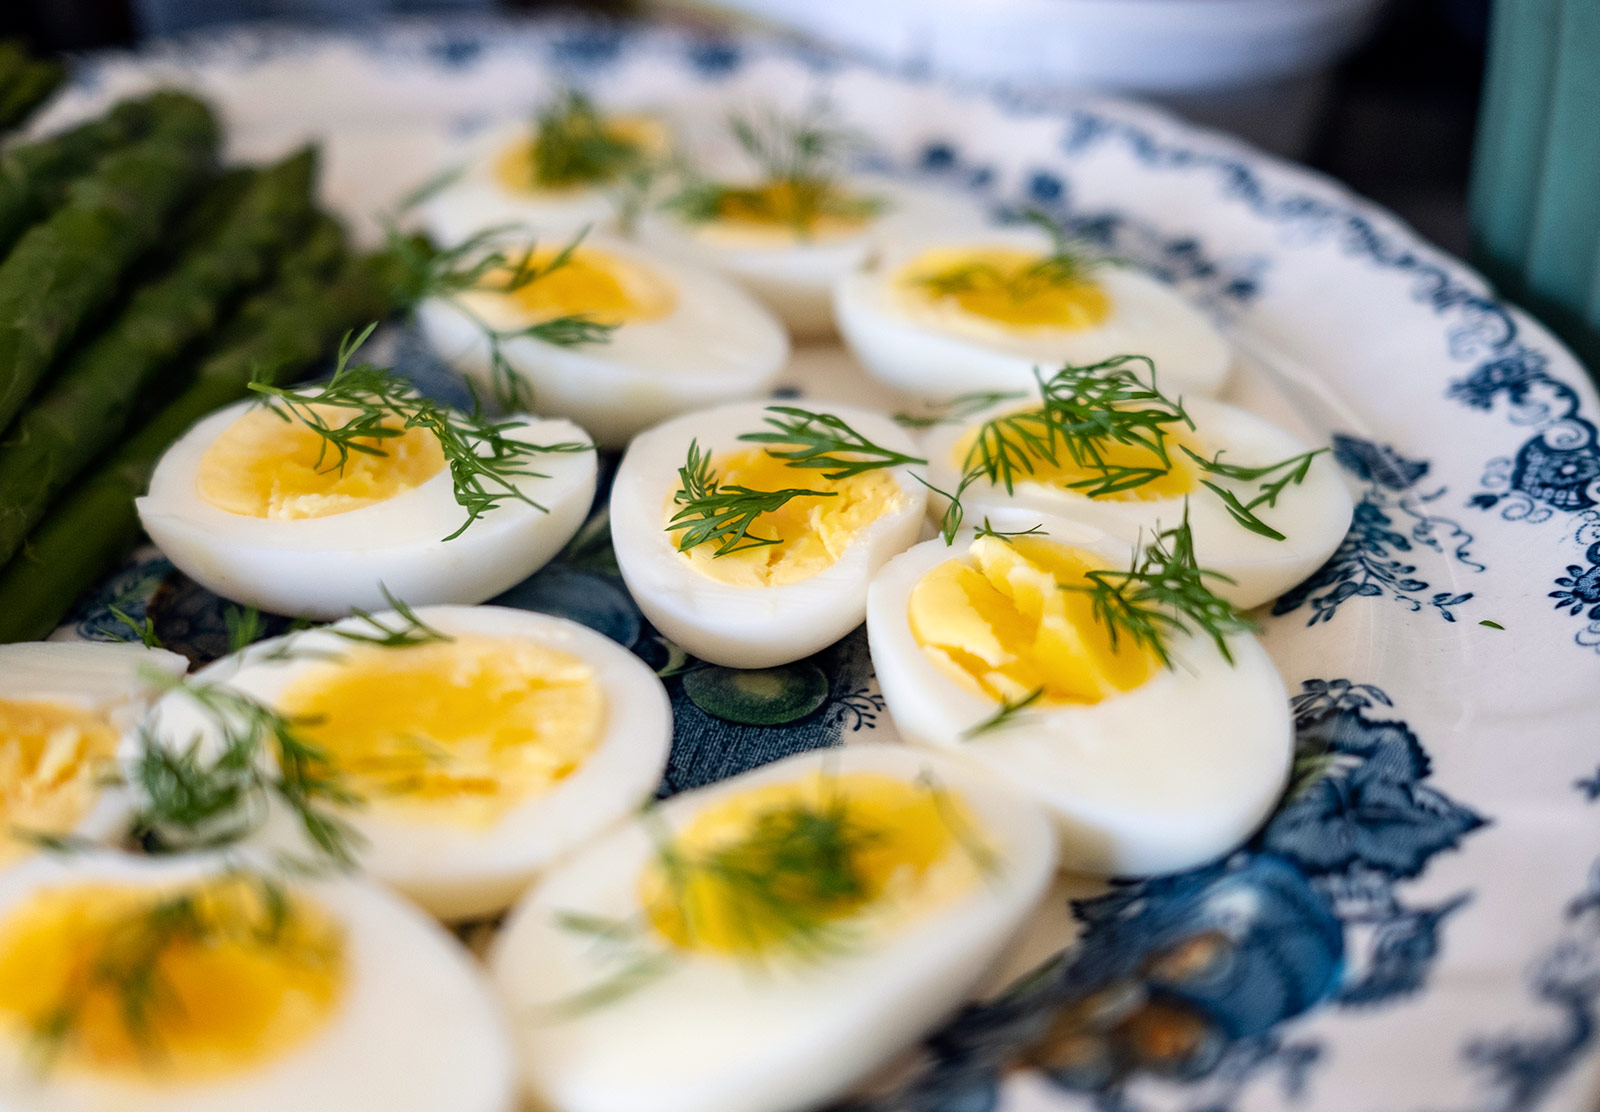 Plate of eggs